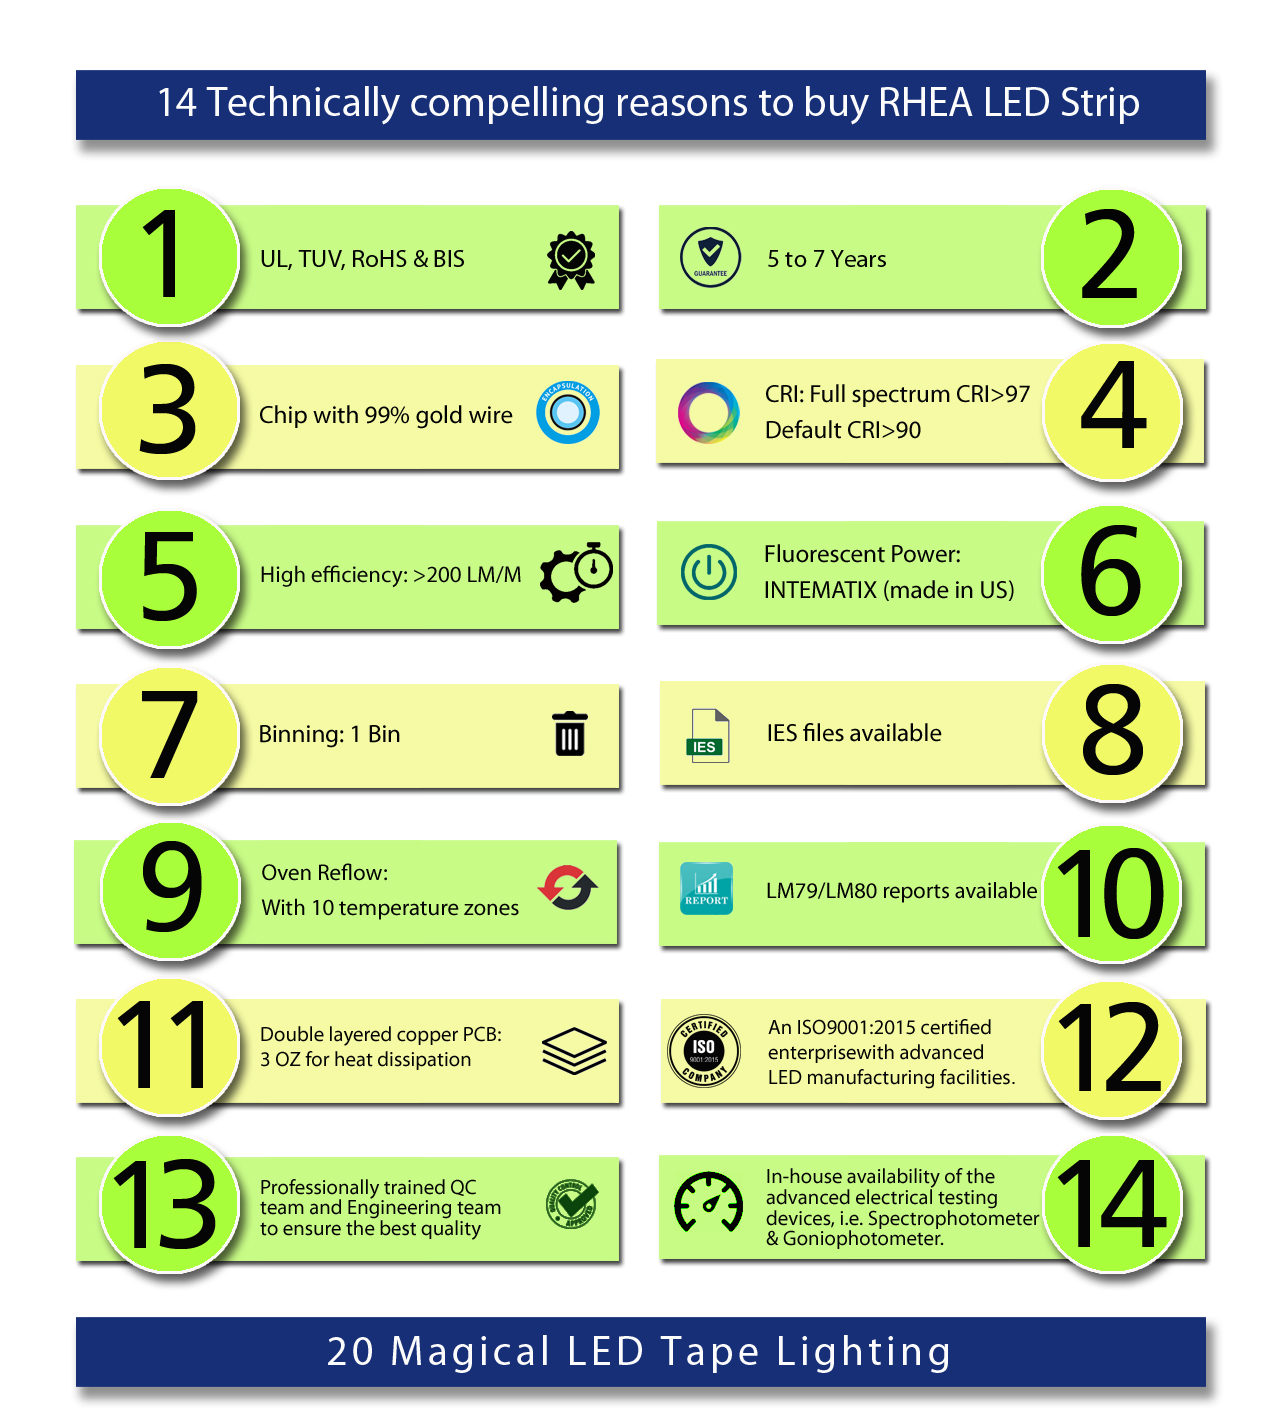 14 Compelling reasons to buy RHEA LED - with Shadow -2